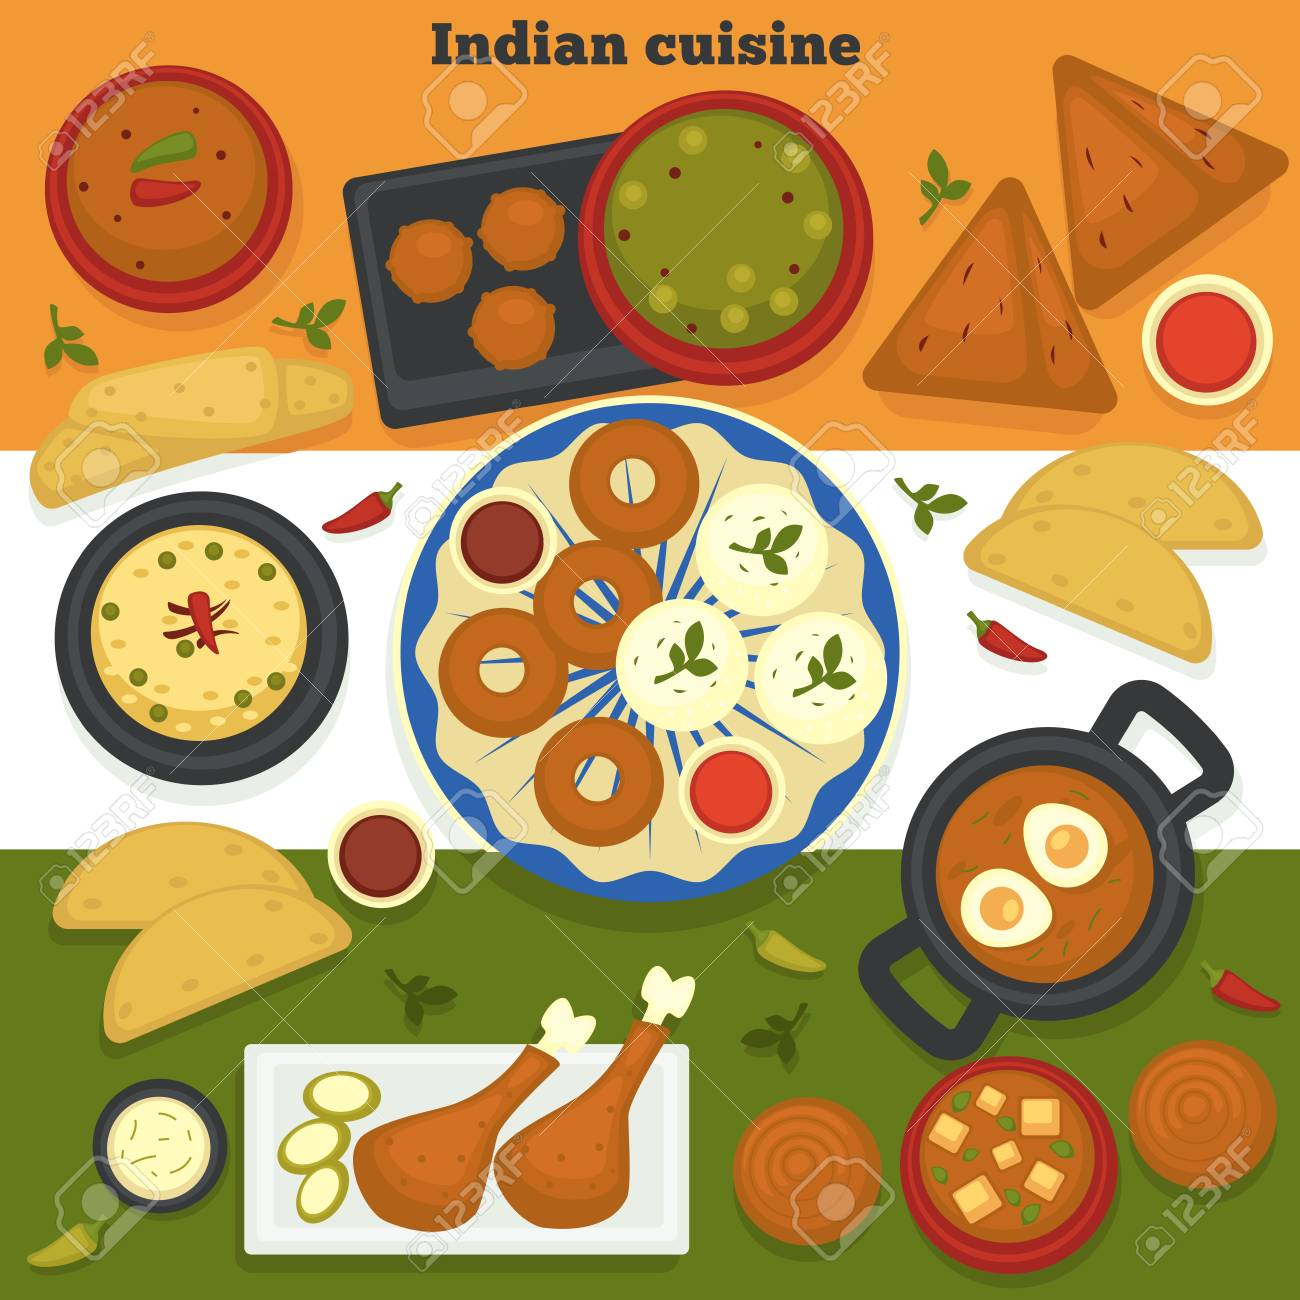 Cuisine India India Food Indian Cuisine Meat And Bakery Products Vector Curry